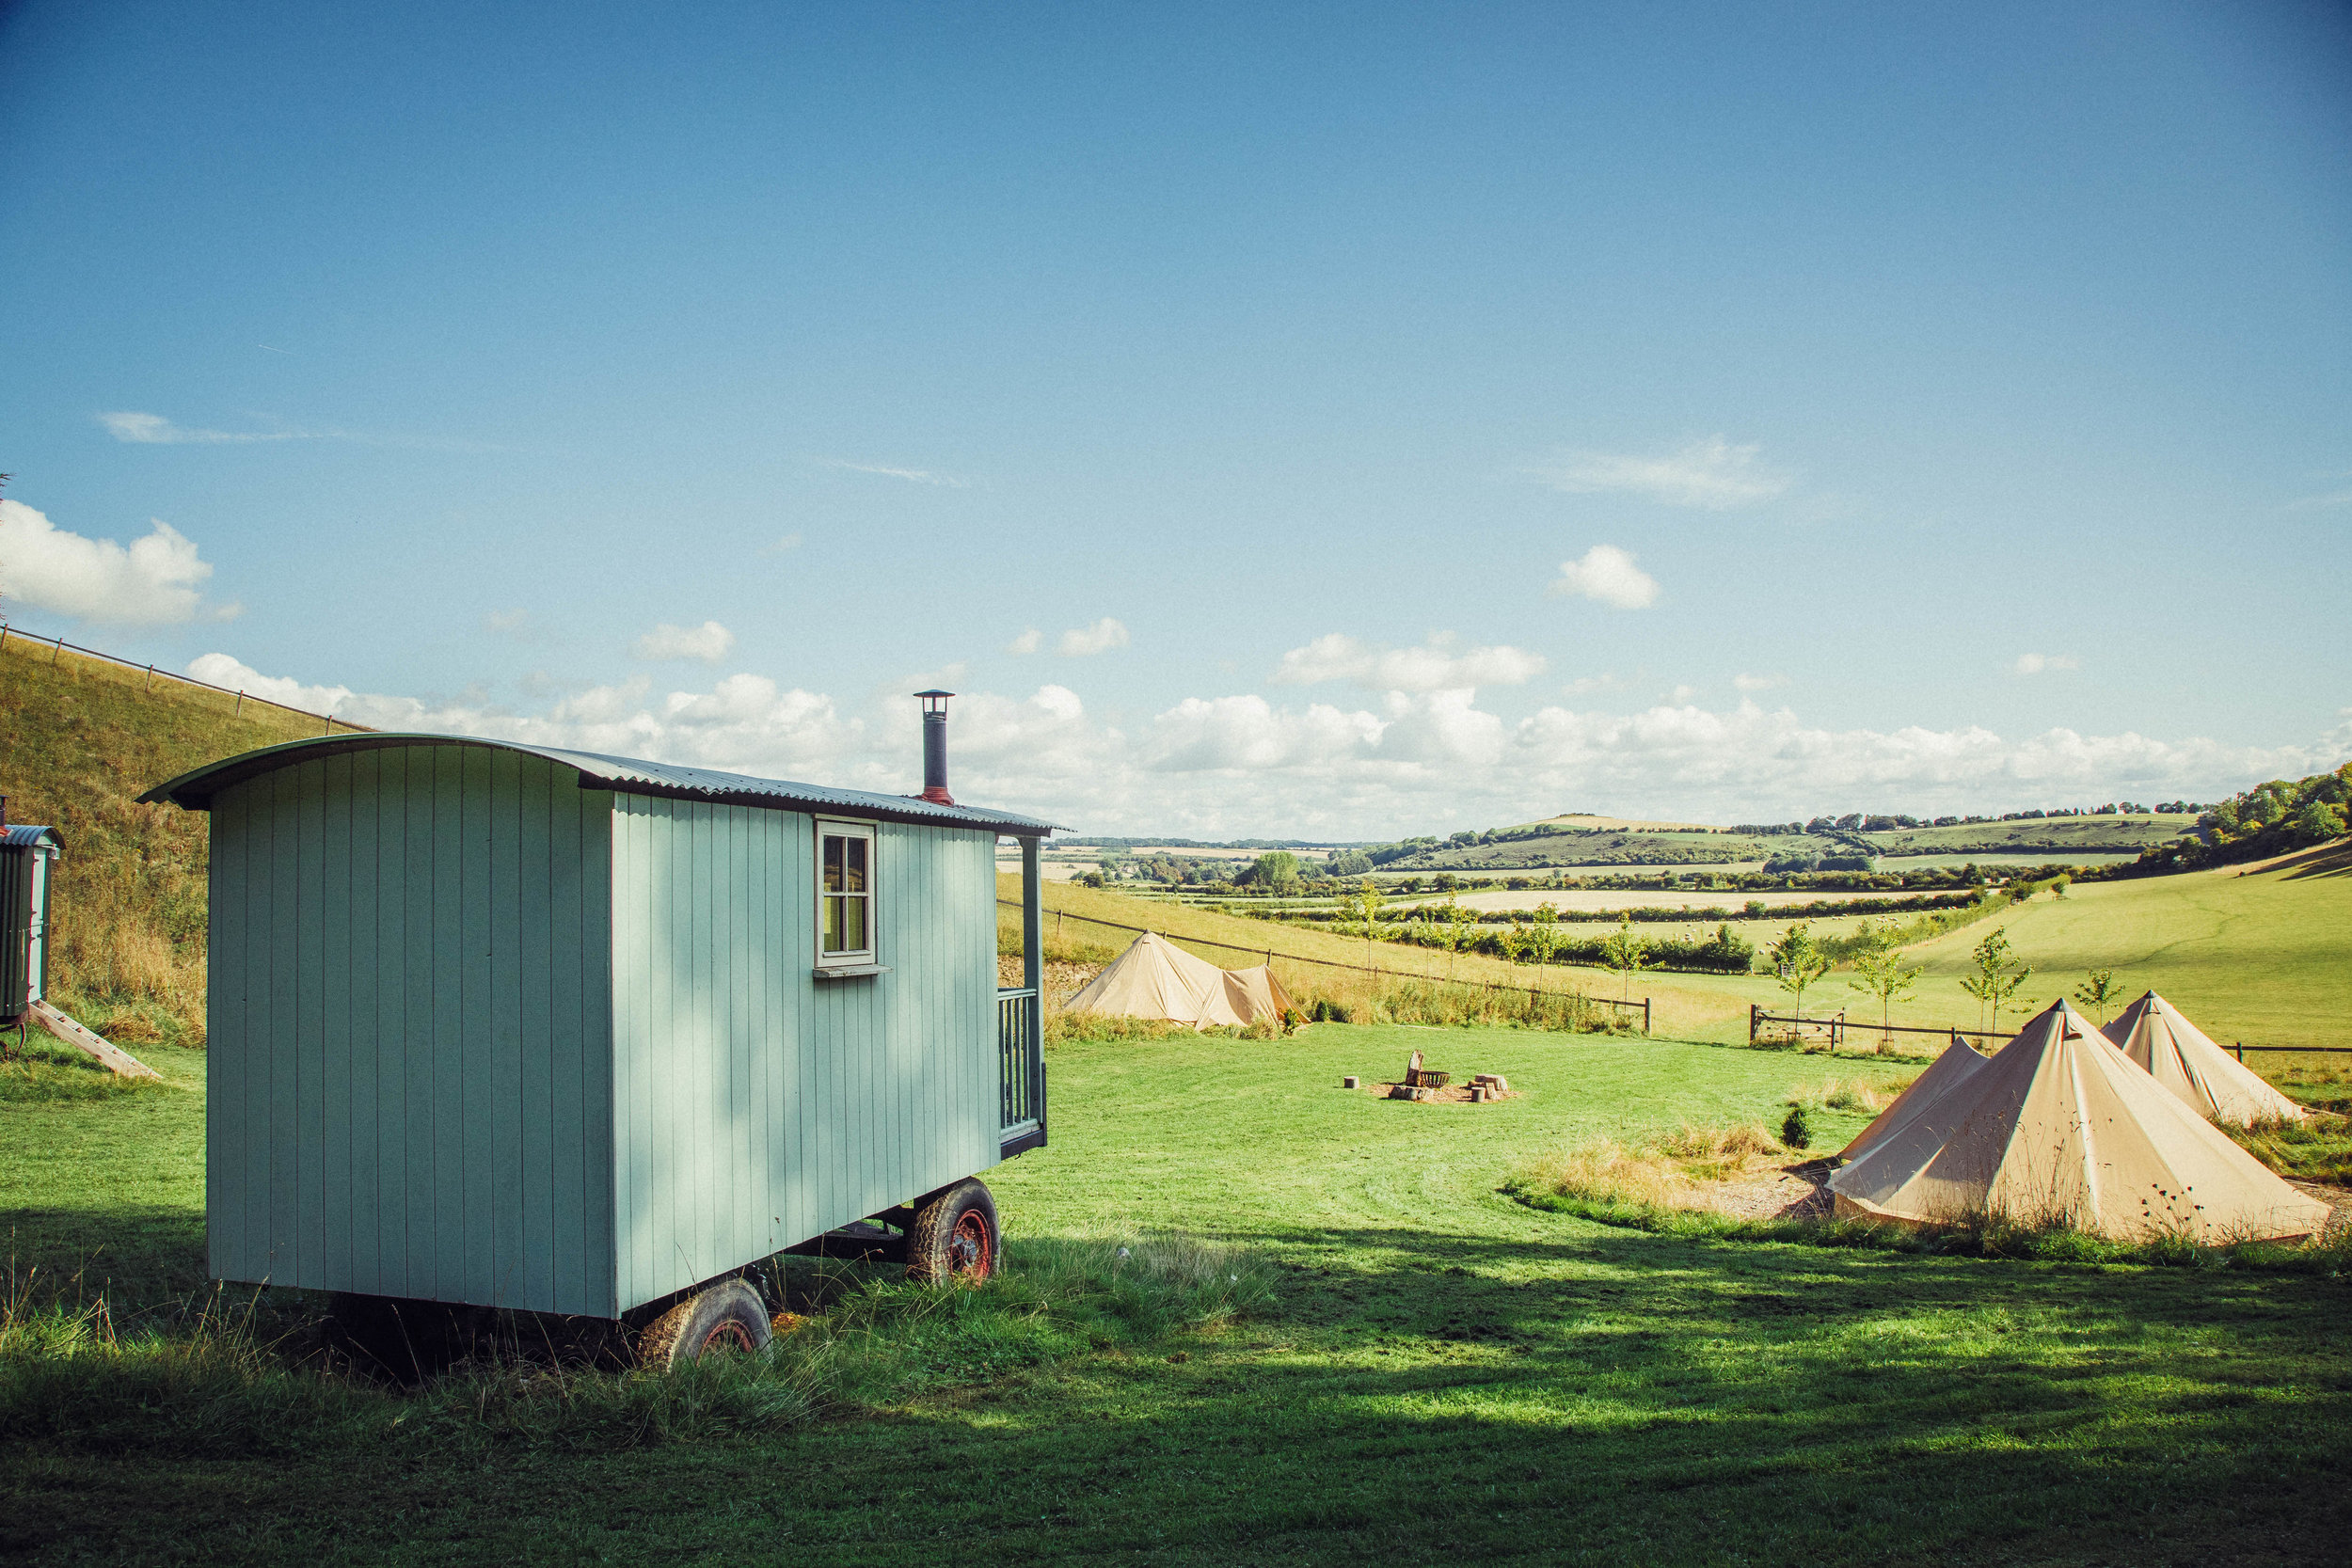 The Huts & Tents - Comfortable accommodation perfectly positioned to catch the rising sun